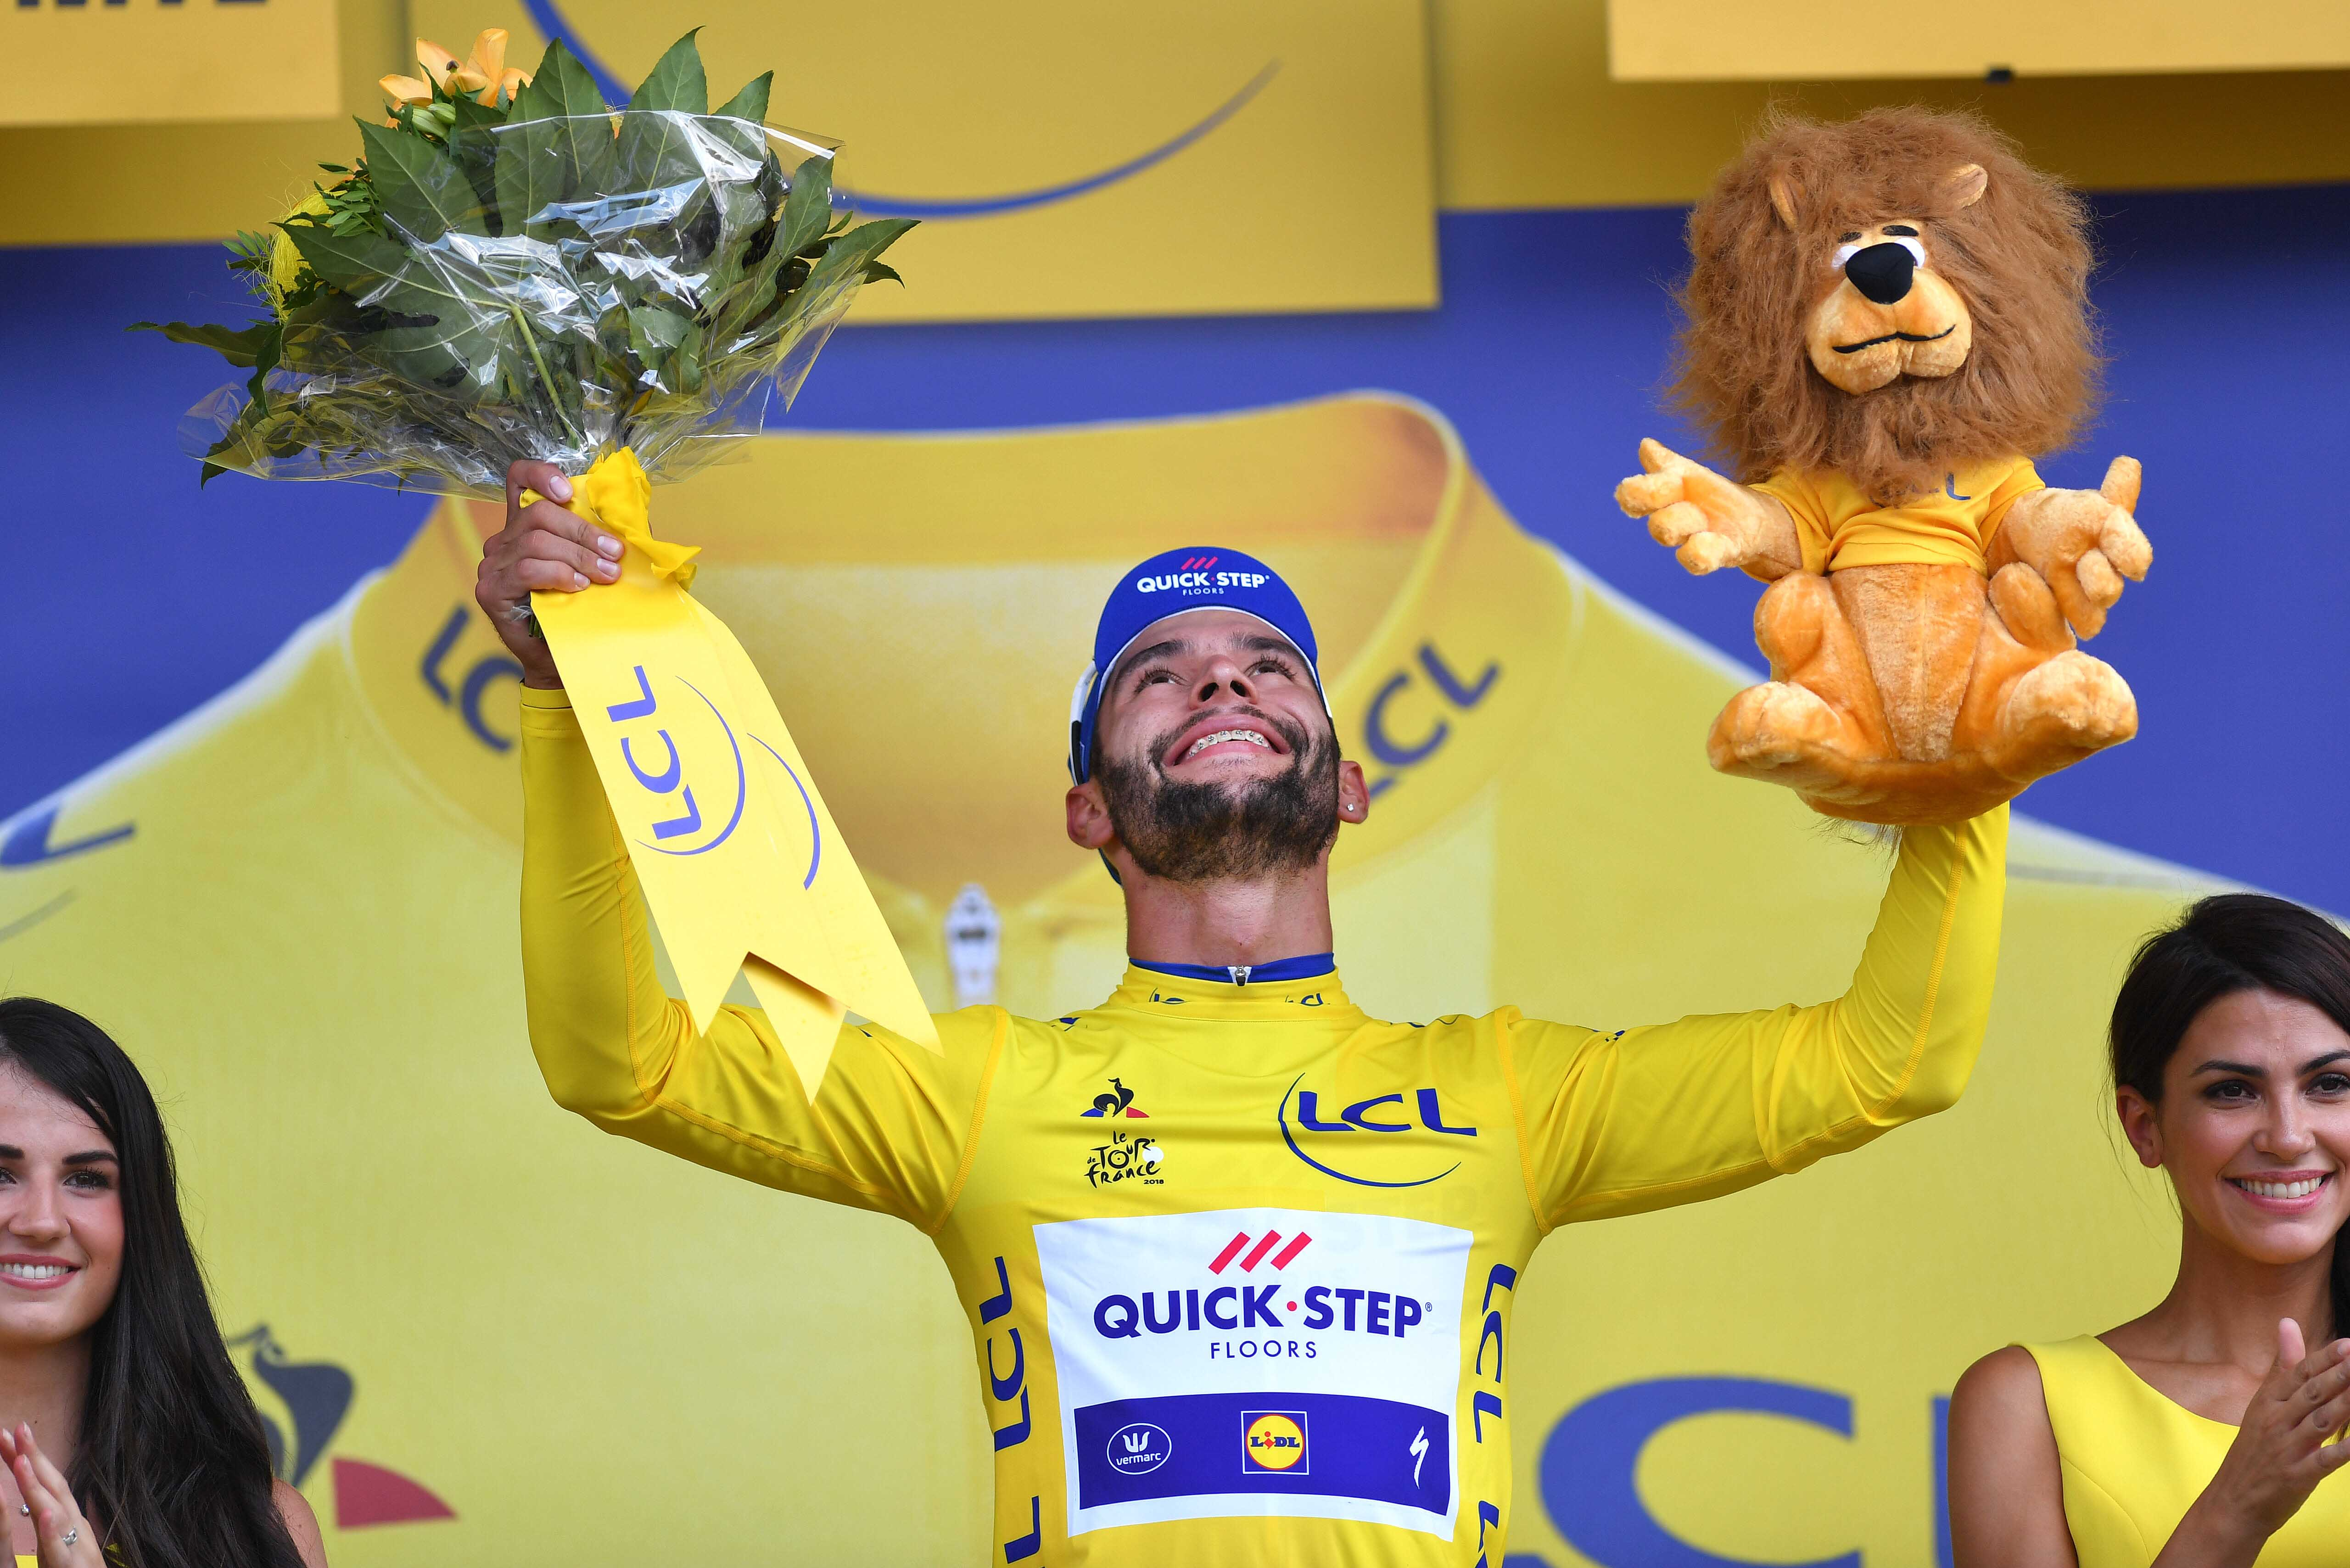 937a22181 Fernando Gaviria wins opening stage of the Tour de France to take first  yellow jersey